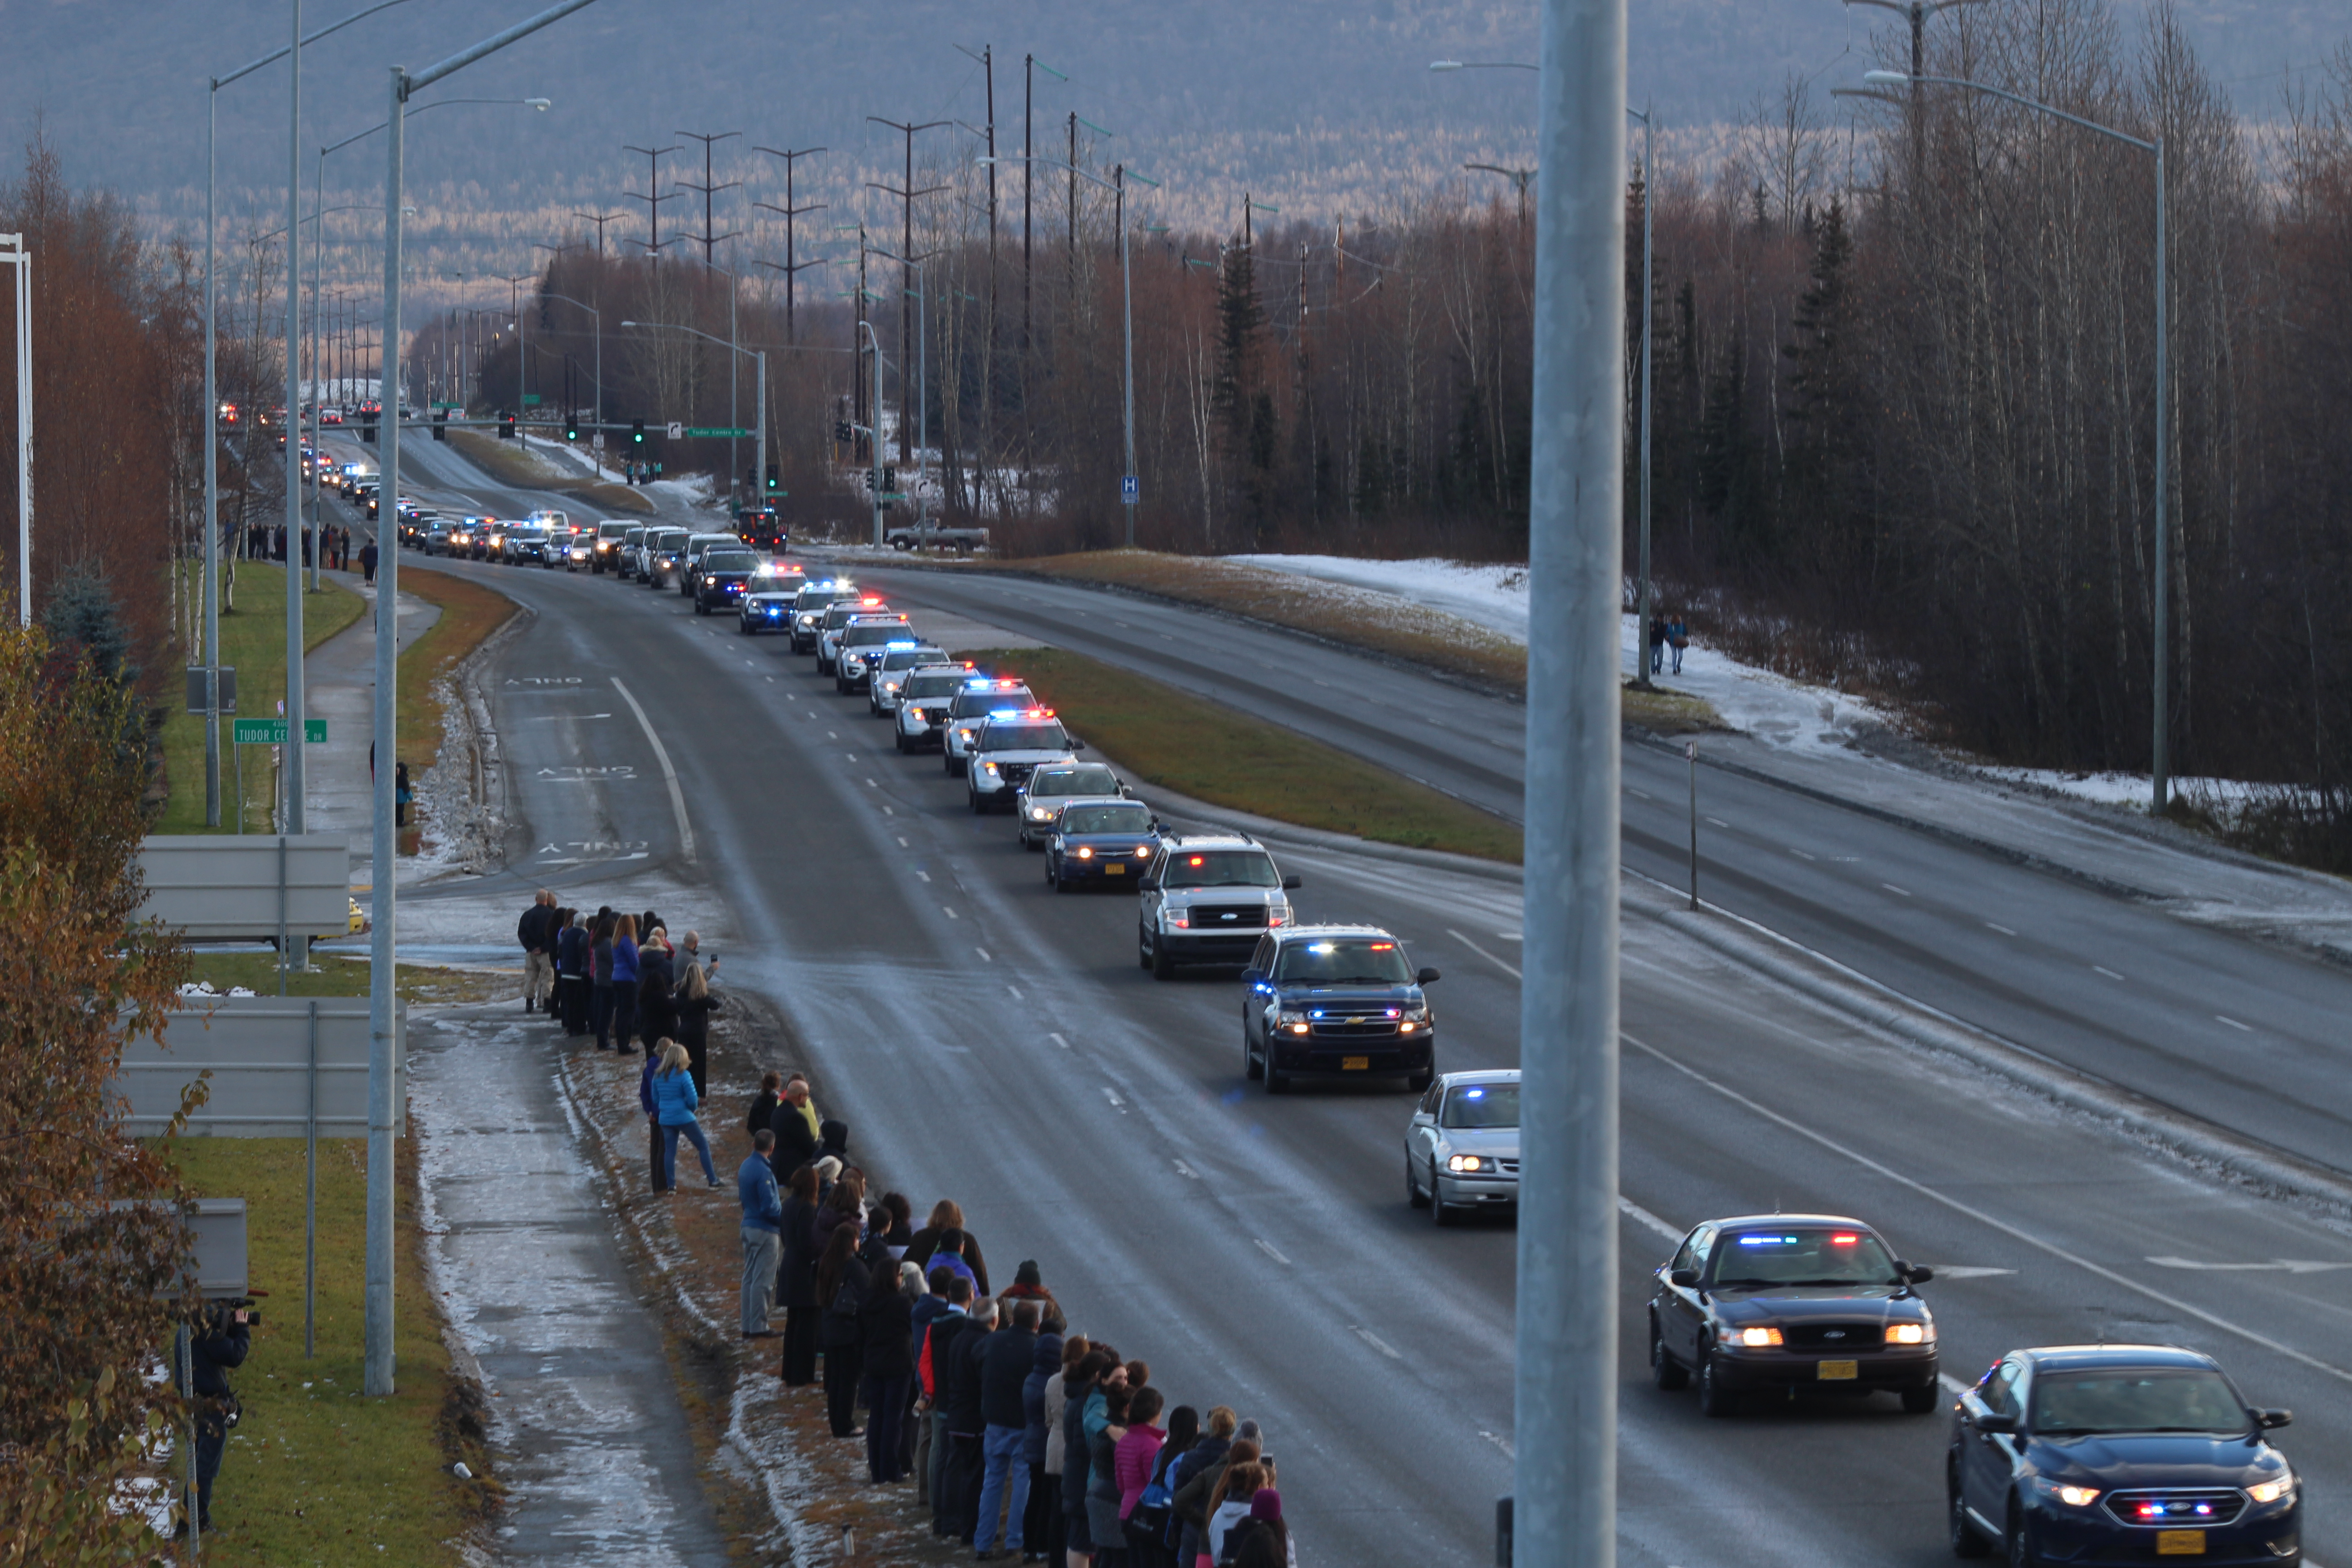 Anchorage citizens watch as a police escort brings FPD Sgt. Allen Brandt's body to Ted Stevens International Airport for transport to Fairbanks (Photo by Wesley Early, Alaska Public Media – Anchorage)